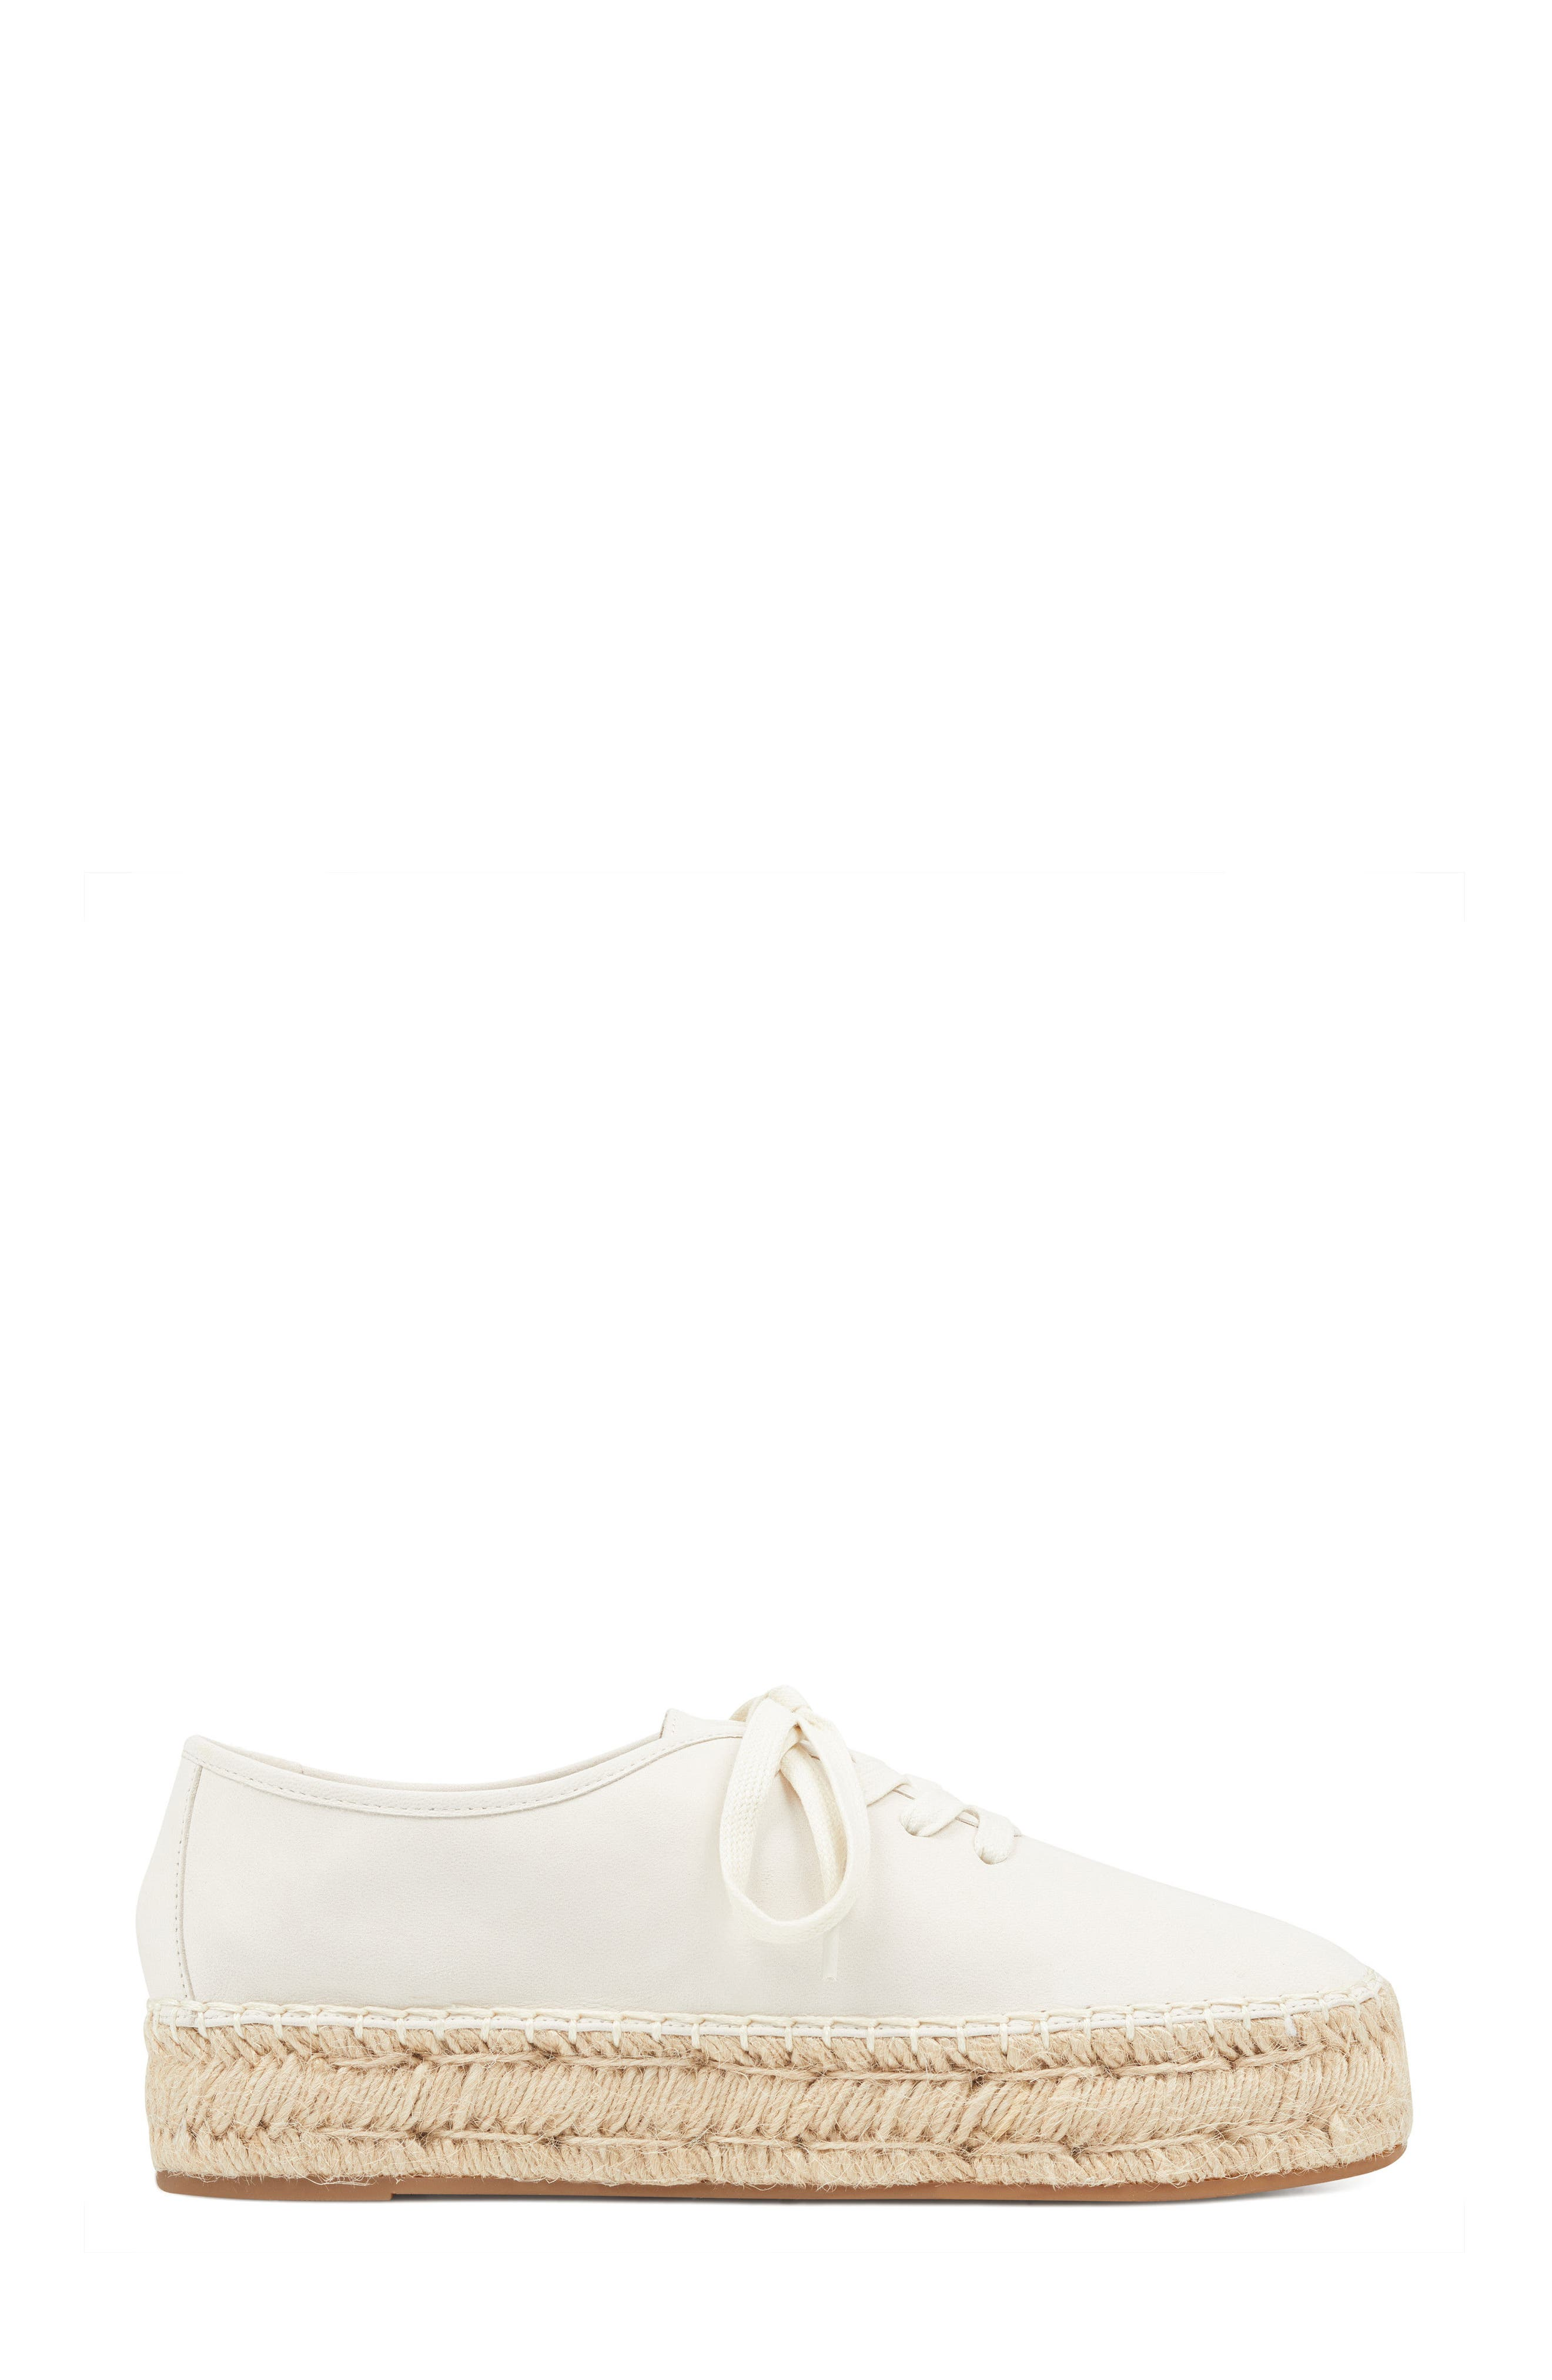 Gingerbread Espadrille Sneaker,                             Alternate thumbnail 3, color,                             OFF WHITE LEATHER